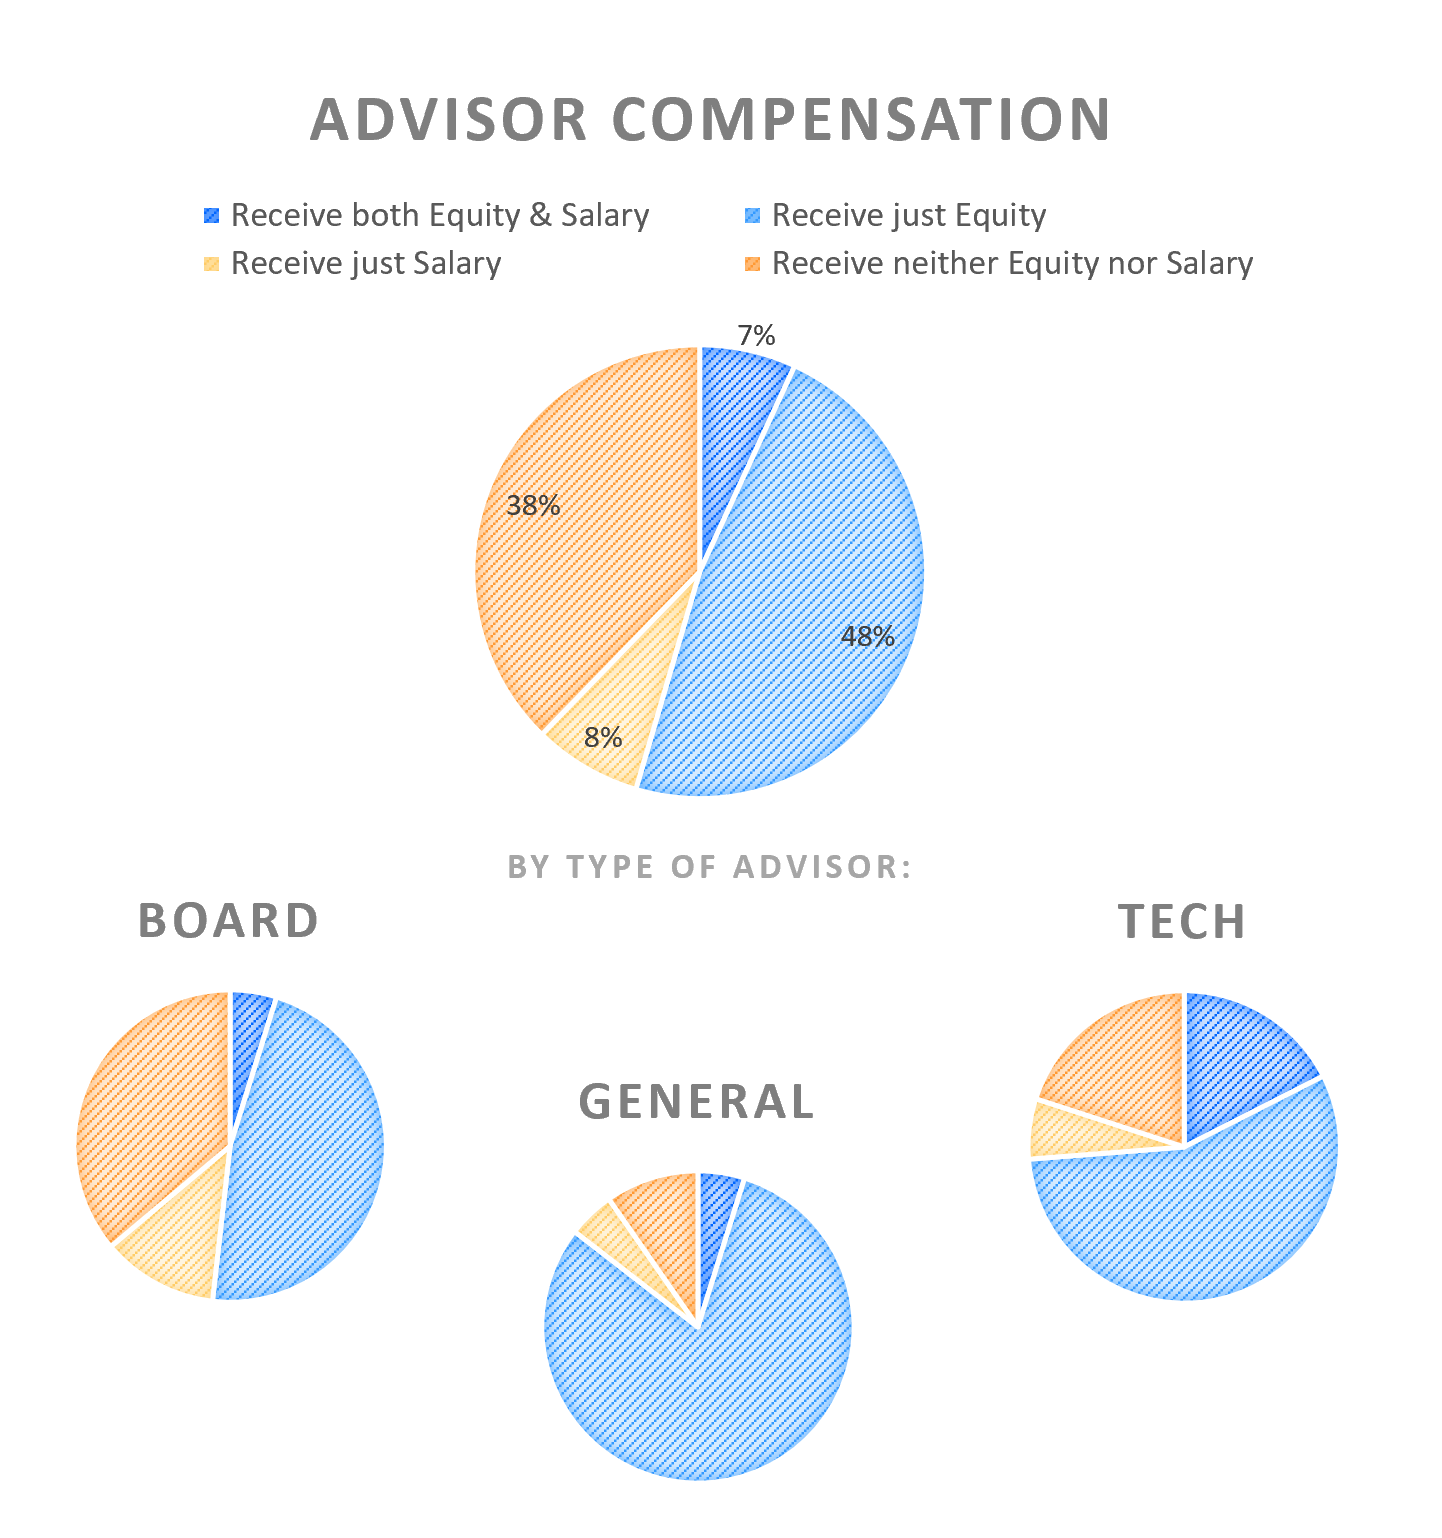 Advisor compensation by role type